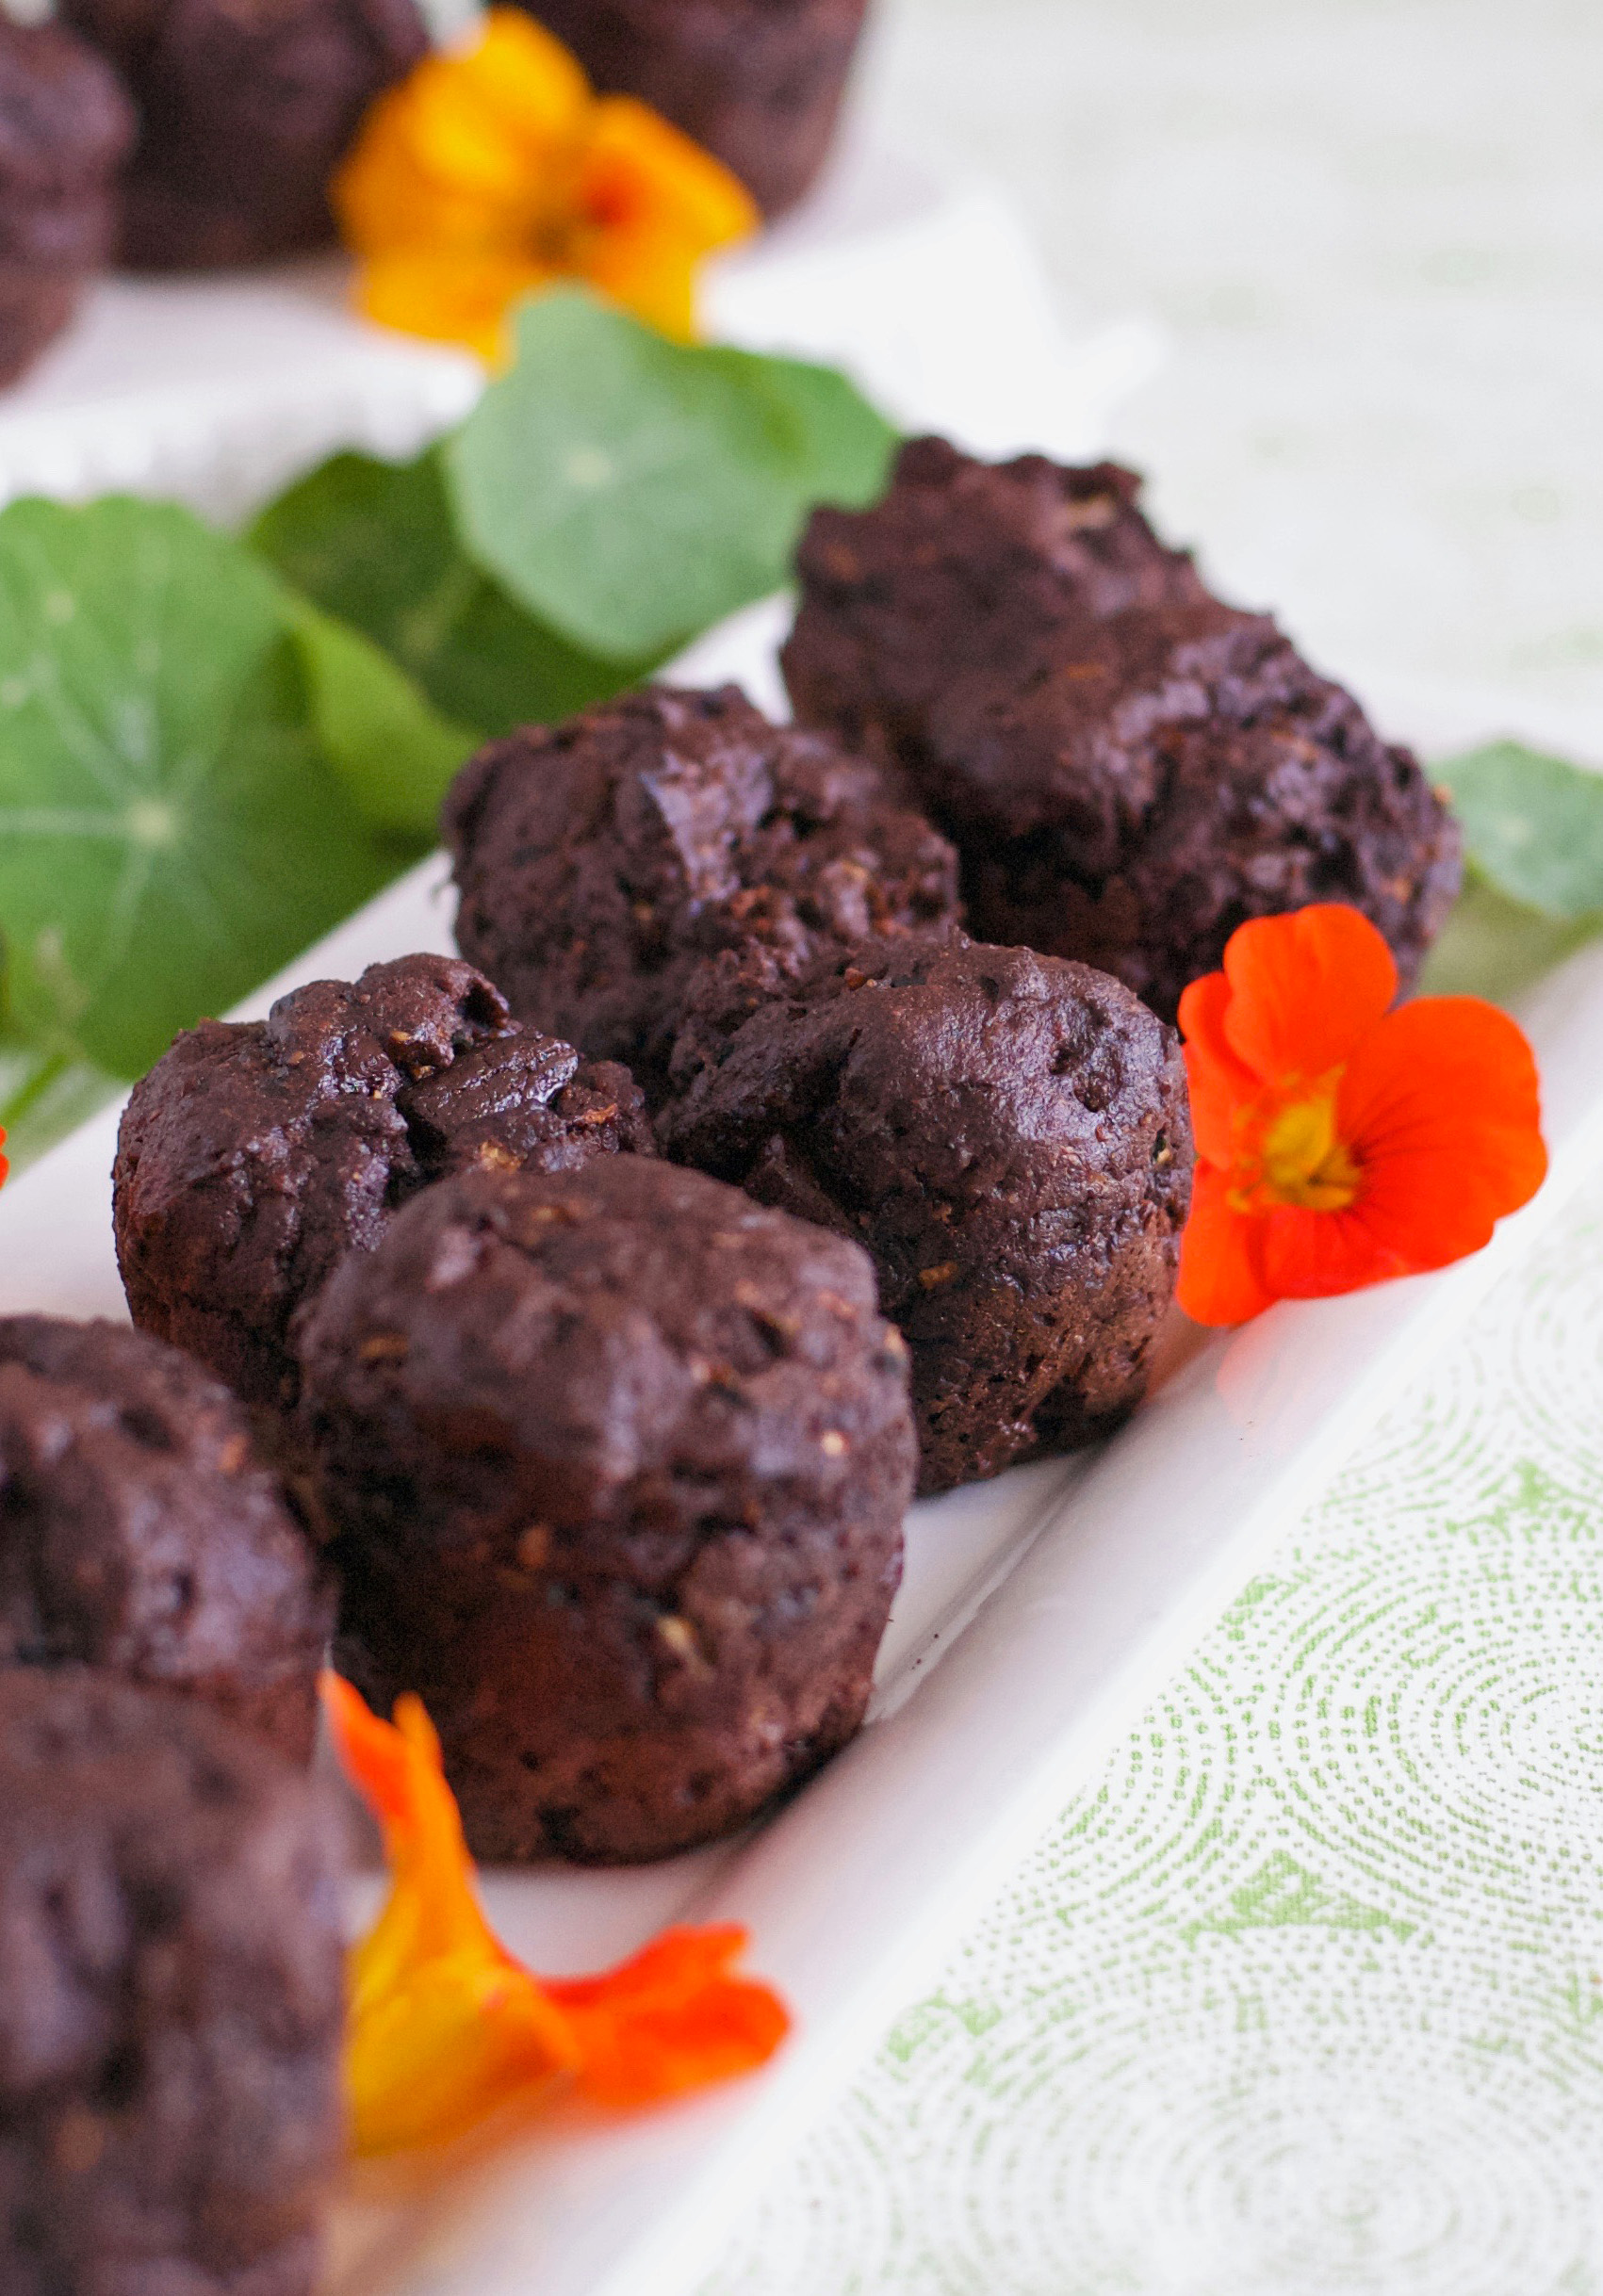 Gluten and Dairy Free Chocolate Zucchini Muffins Recipe